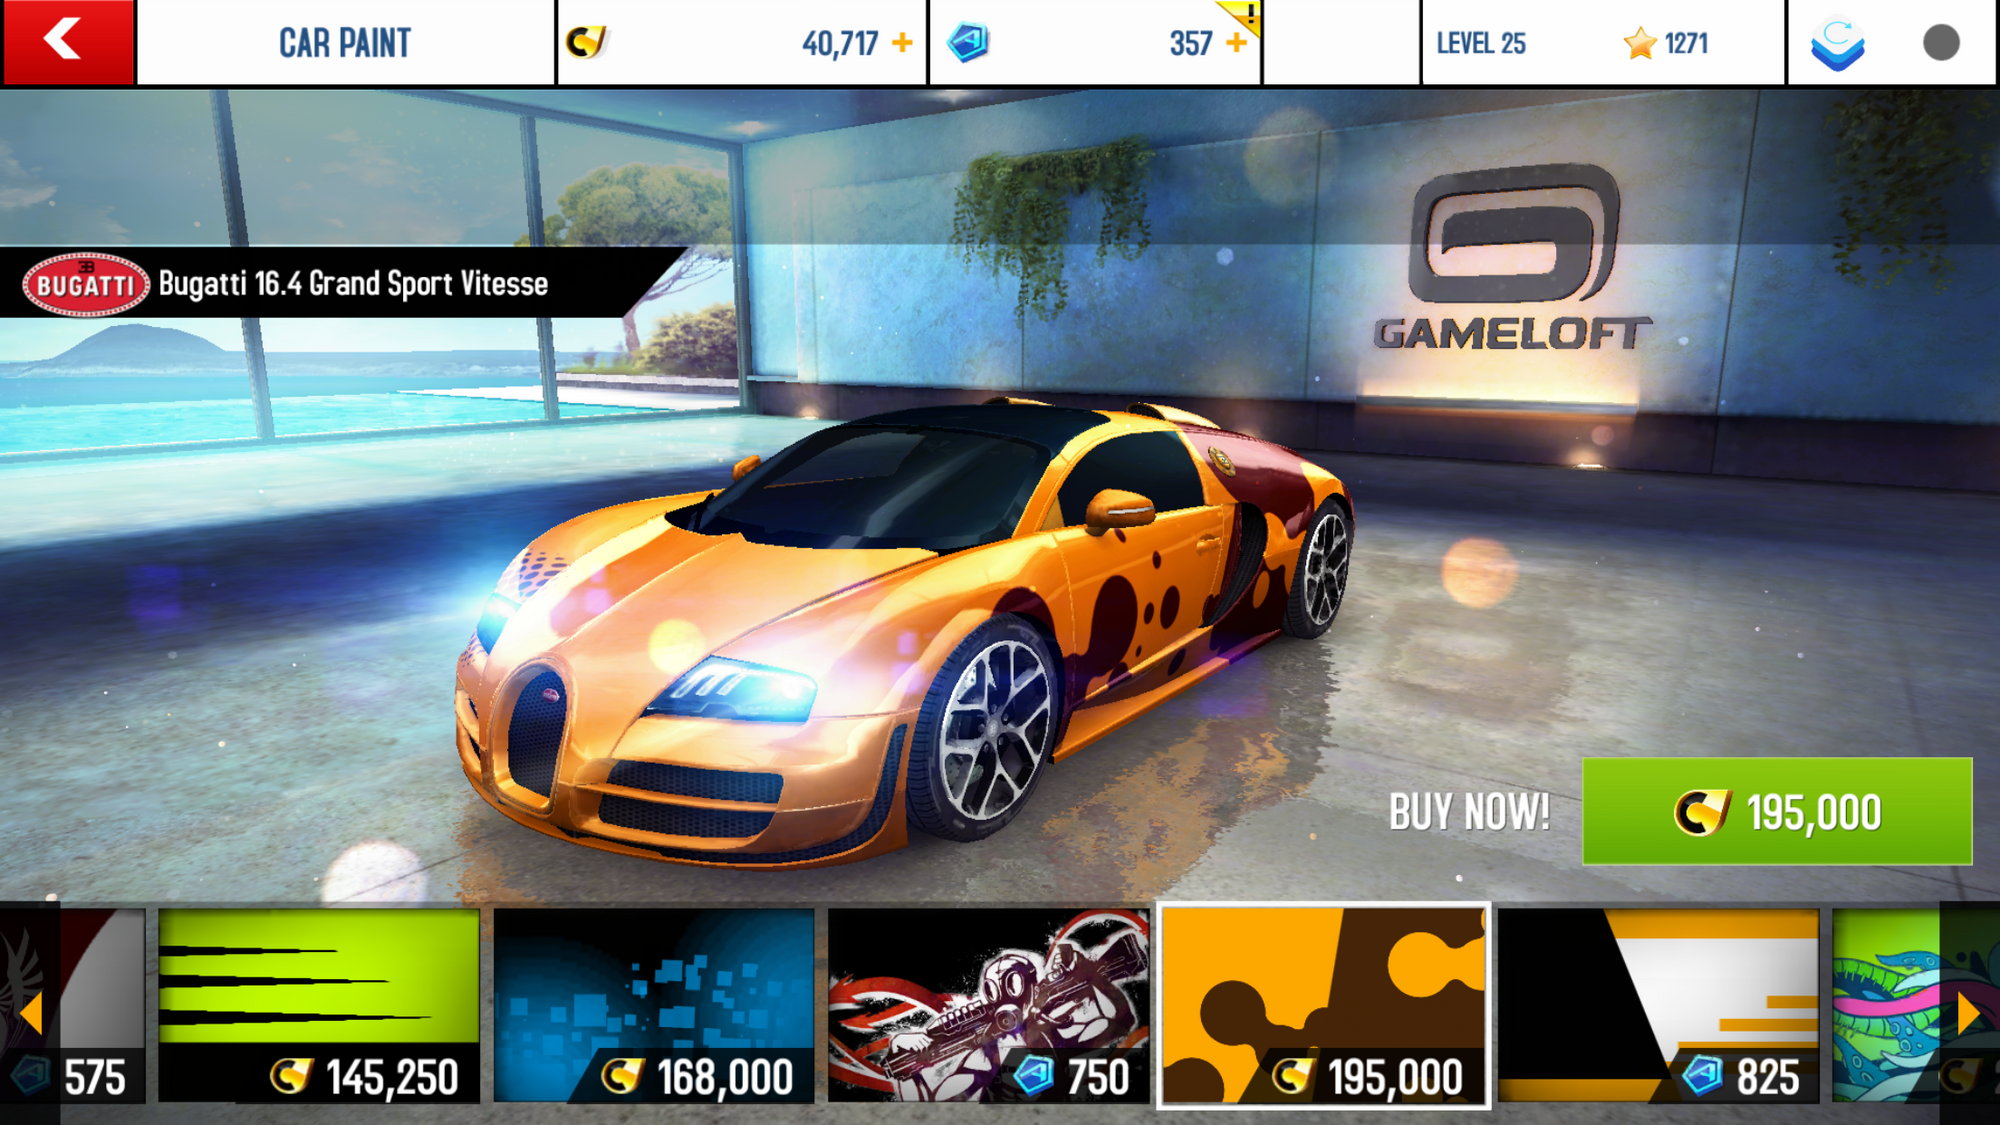 2000?cb=20160725174651 Amazing Price Of Bugatti Veyron 16.4 Grand Sport Vitesse In Real Racing 3 Cars Trend